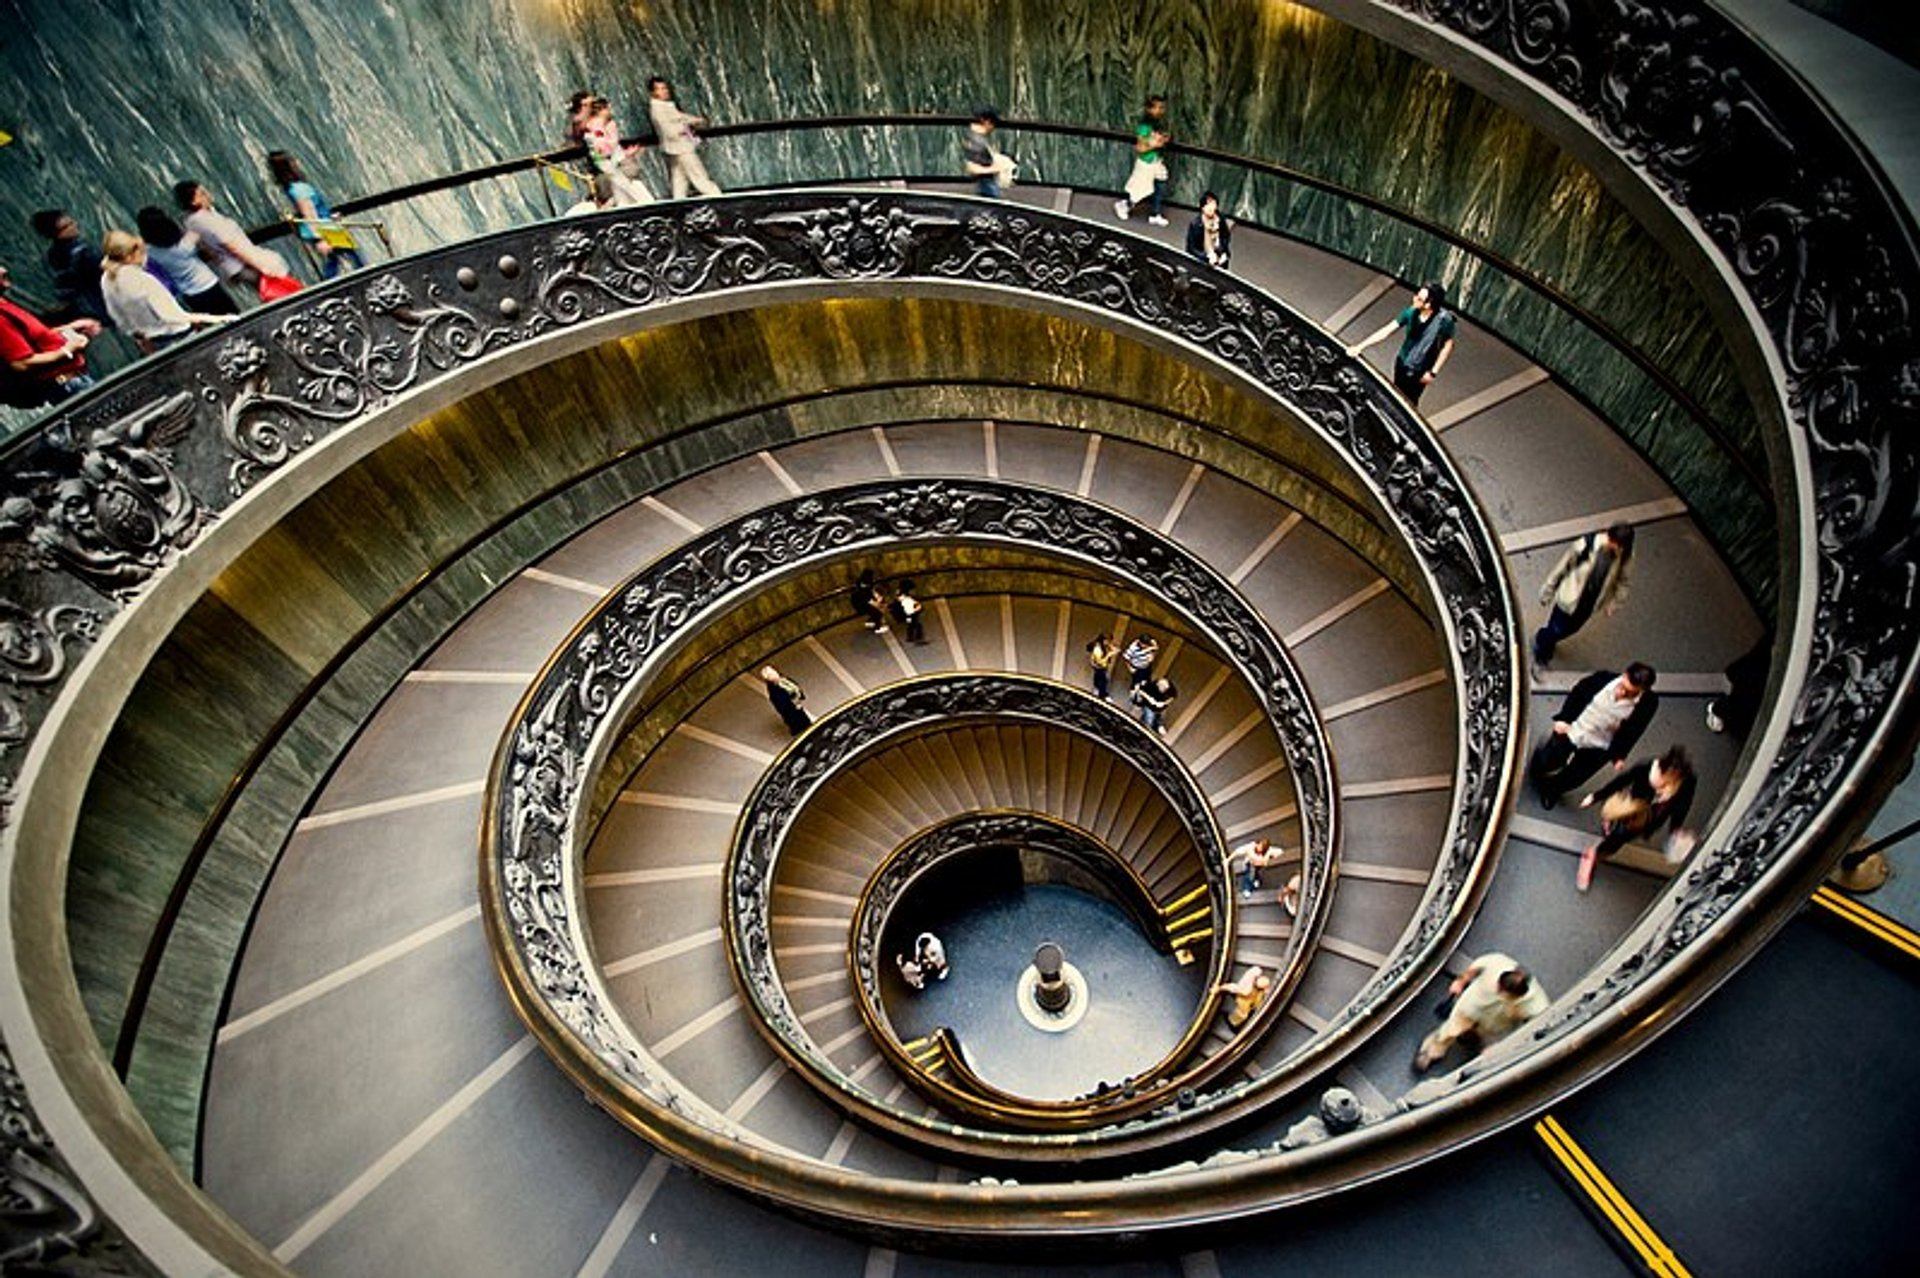 Vatican Museums (Musei Vaticani) in Rome 2020 - Best Time